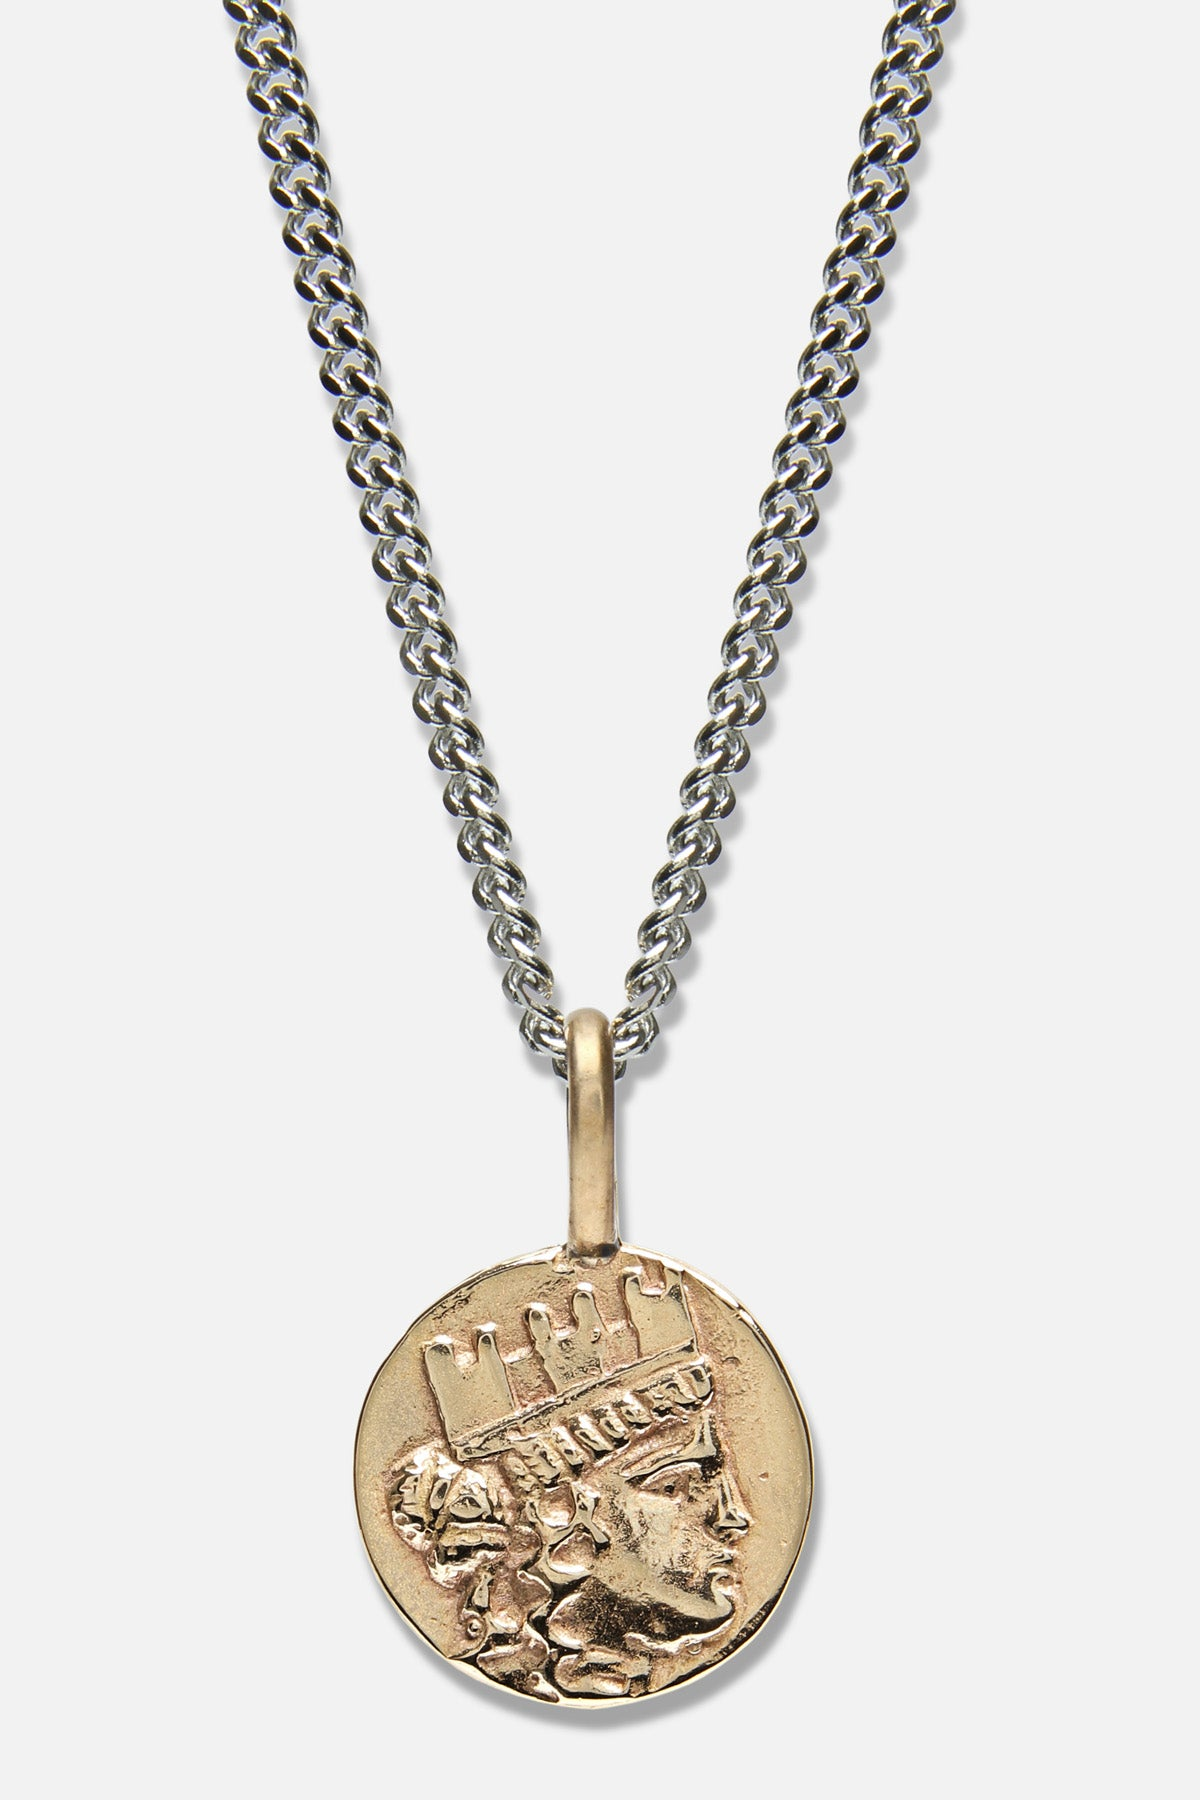 GODDESS OF FORTUNE CHARM NECKLACE IN GOLD BRONZE - Fortune Goods